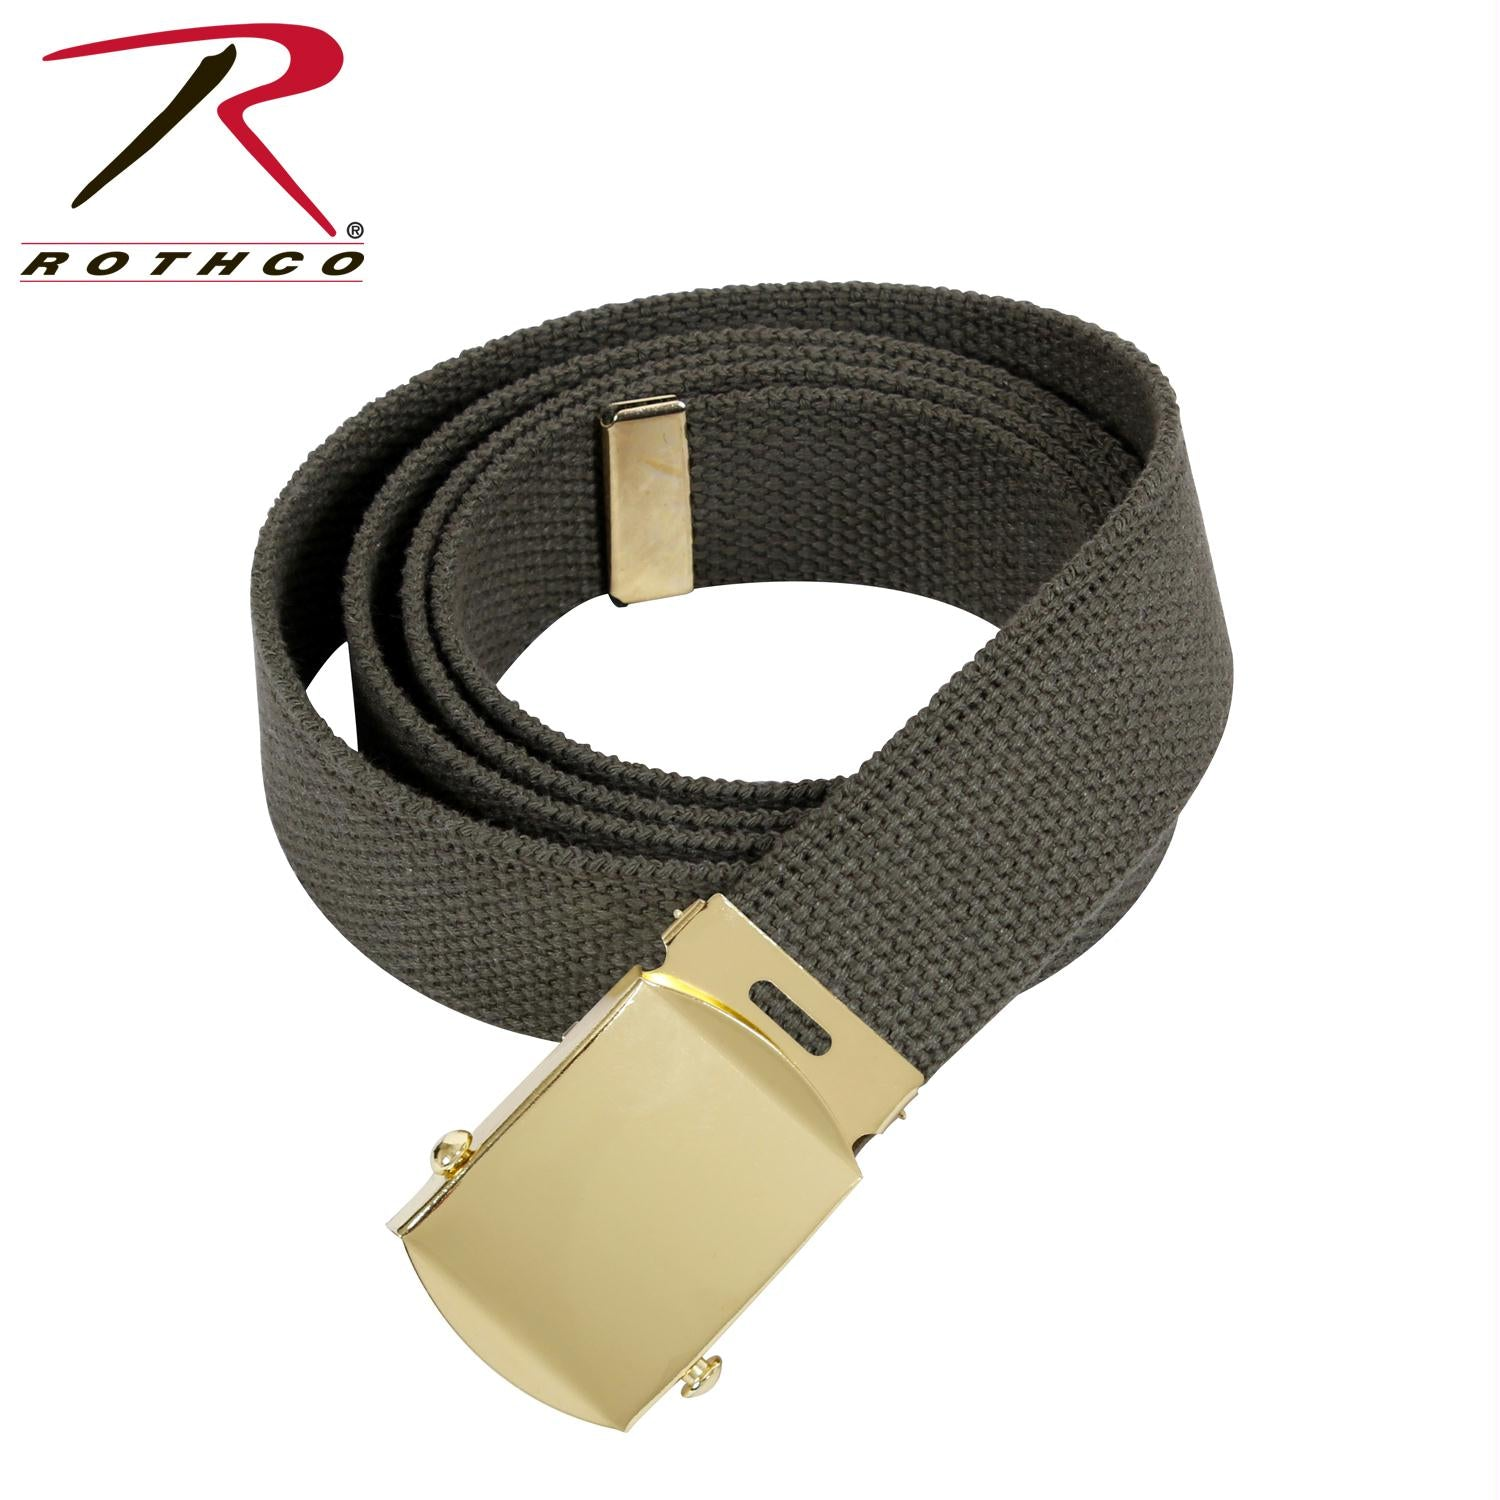 Rothco 54 Inch Military Web Belts - Gold / Olive Drab